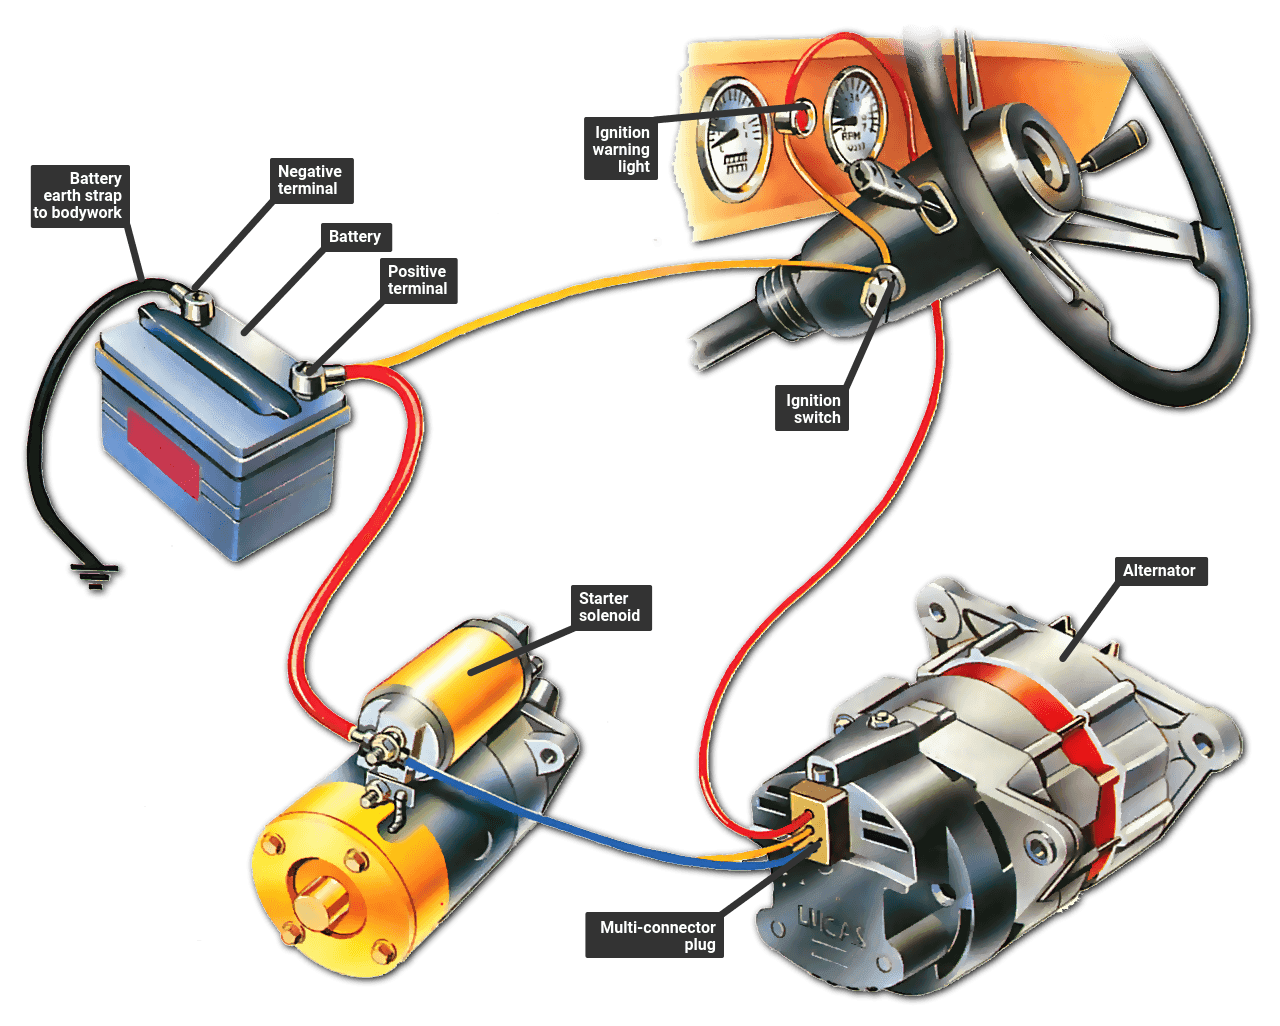 Car Battery Alternator Wiring Diagram Automotive Alternator ... on